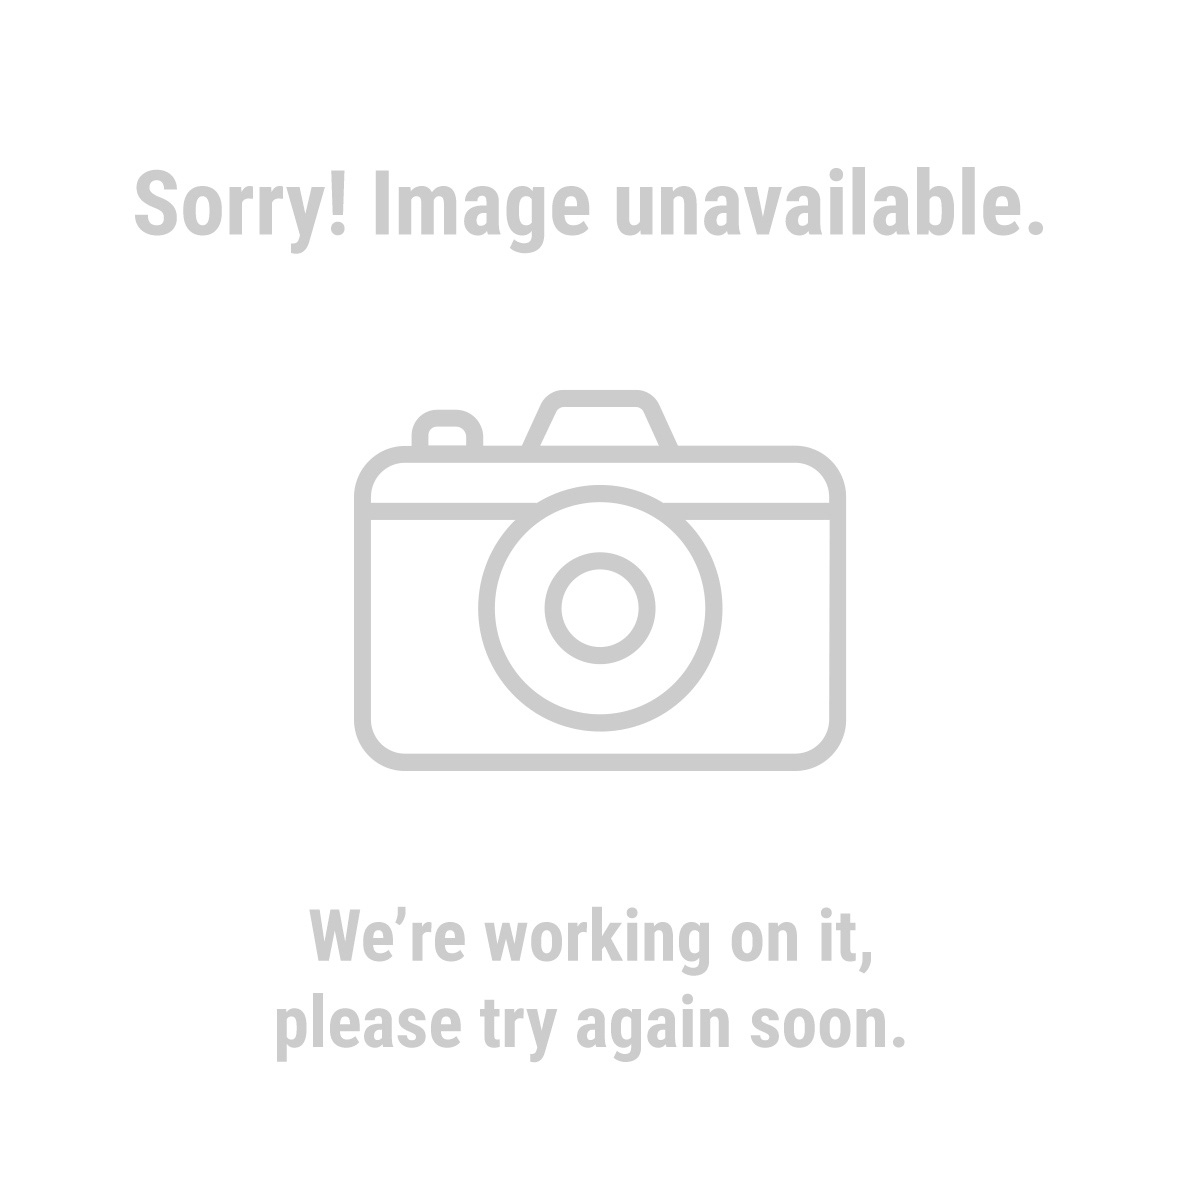 High Lift Riding Lawn Mower Atv Lift